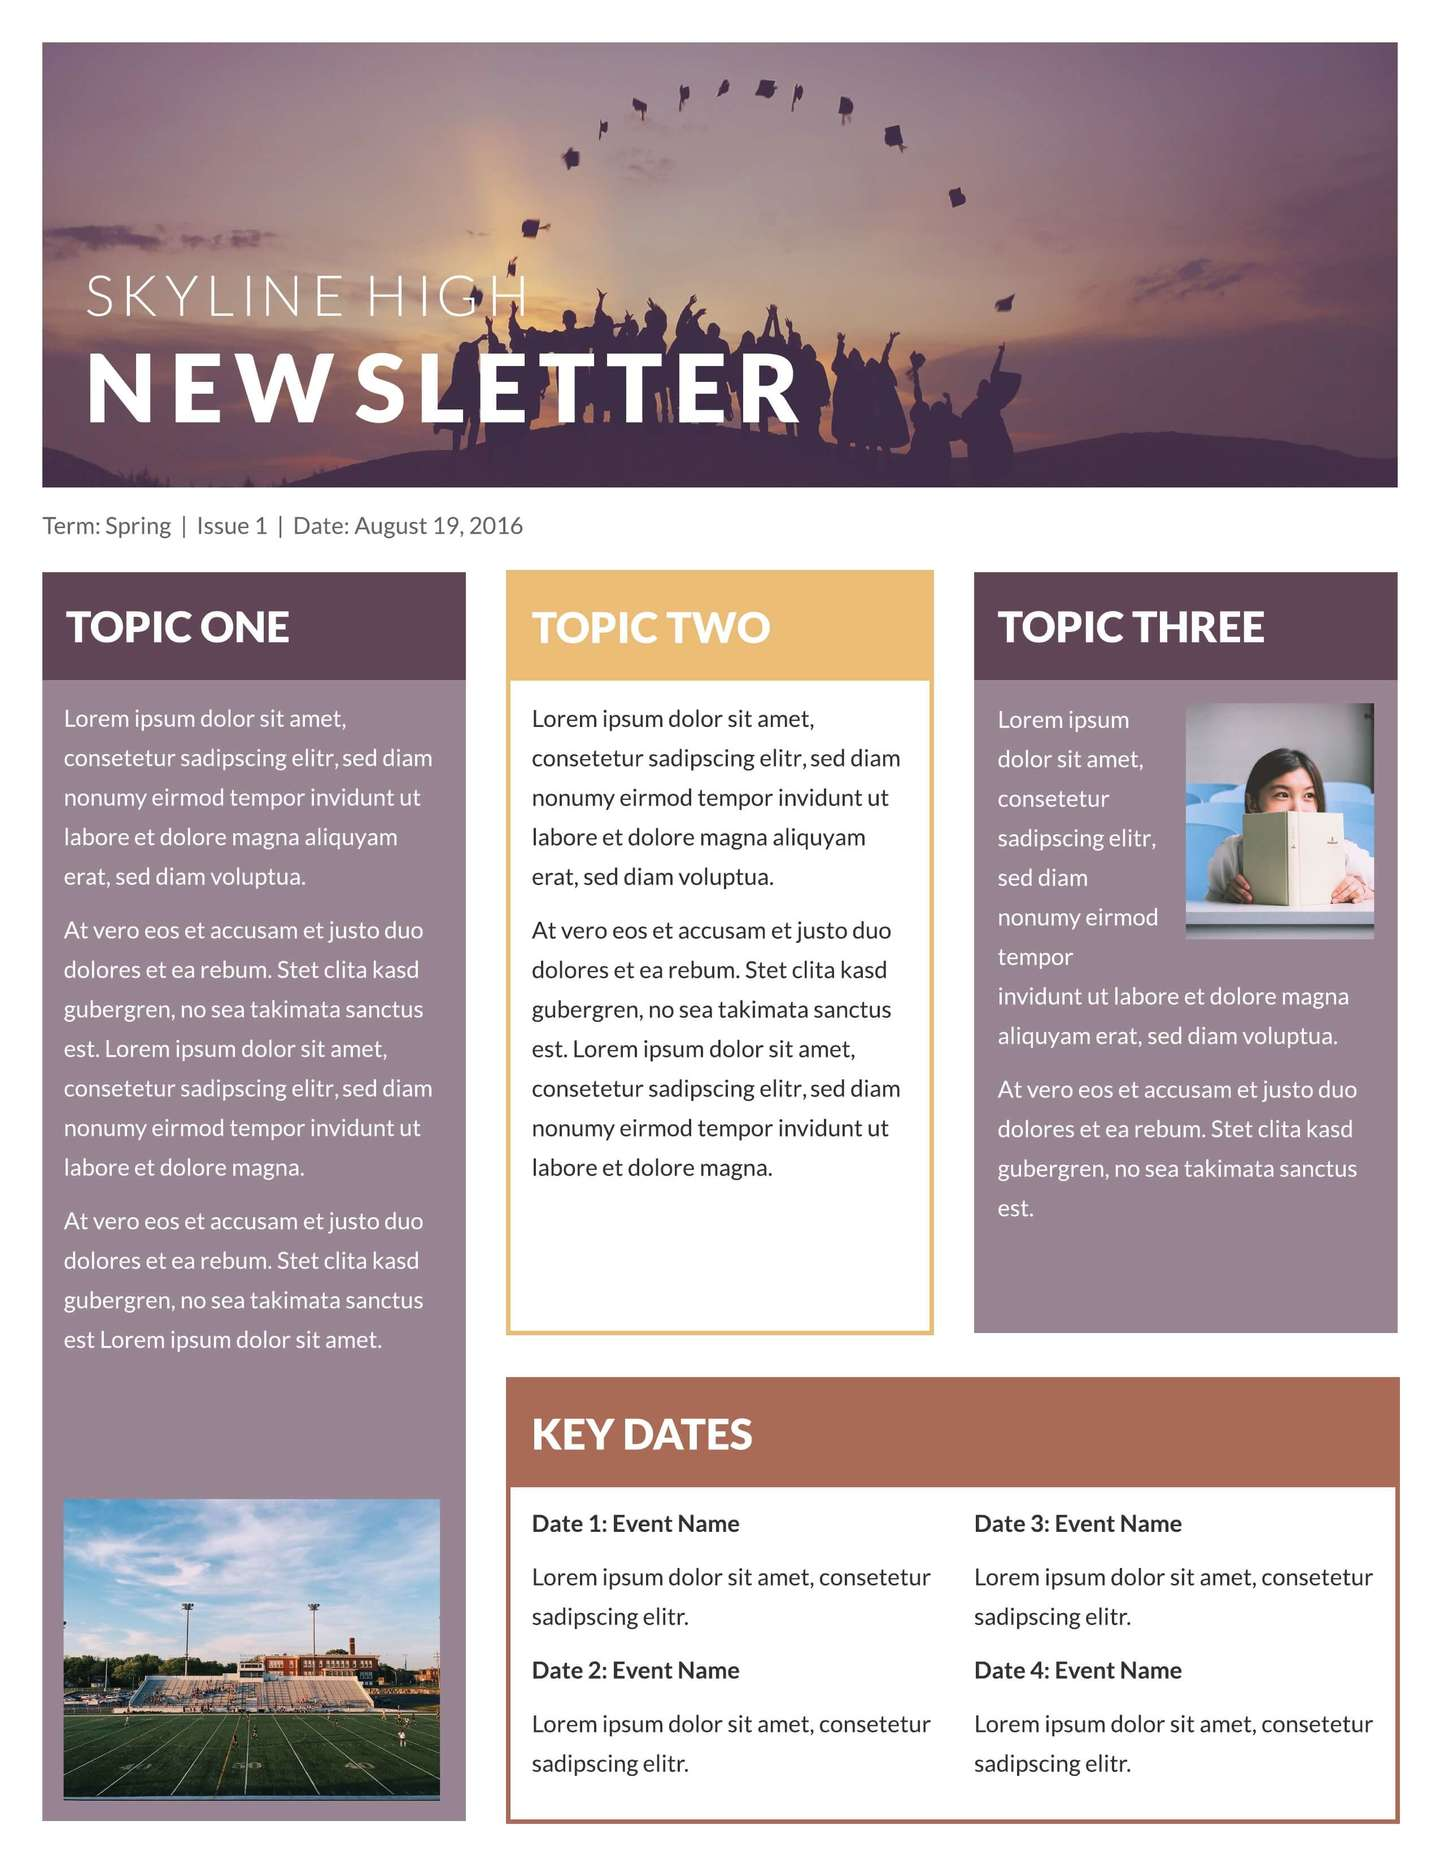 Free printable newsletter templates email newsletter examples skyline high classroom newsletter template spiritdancerdesigns Gallery